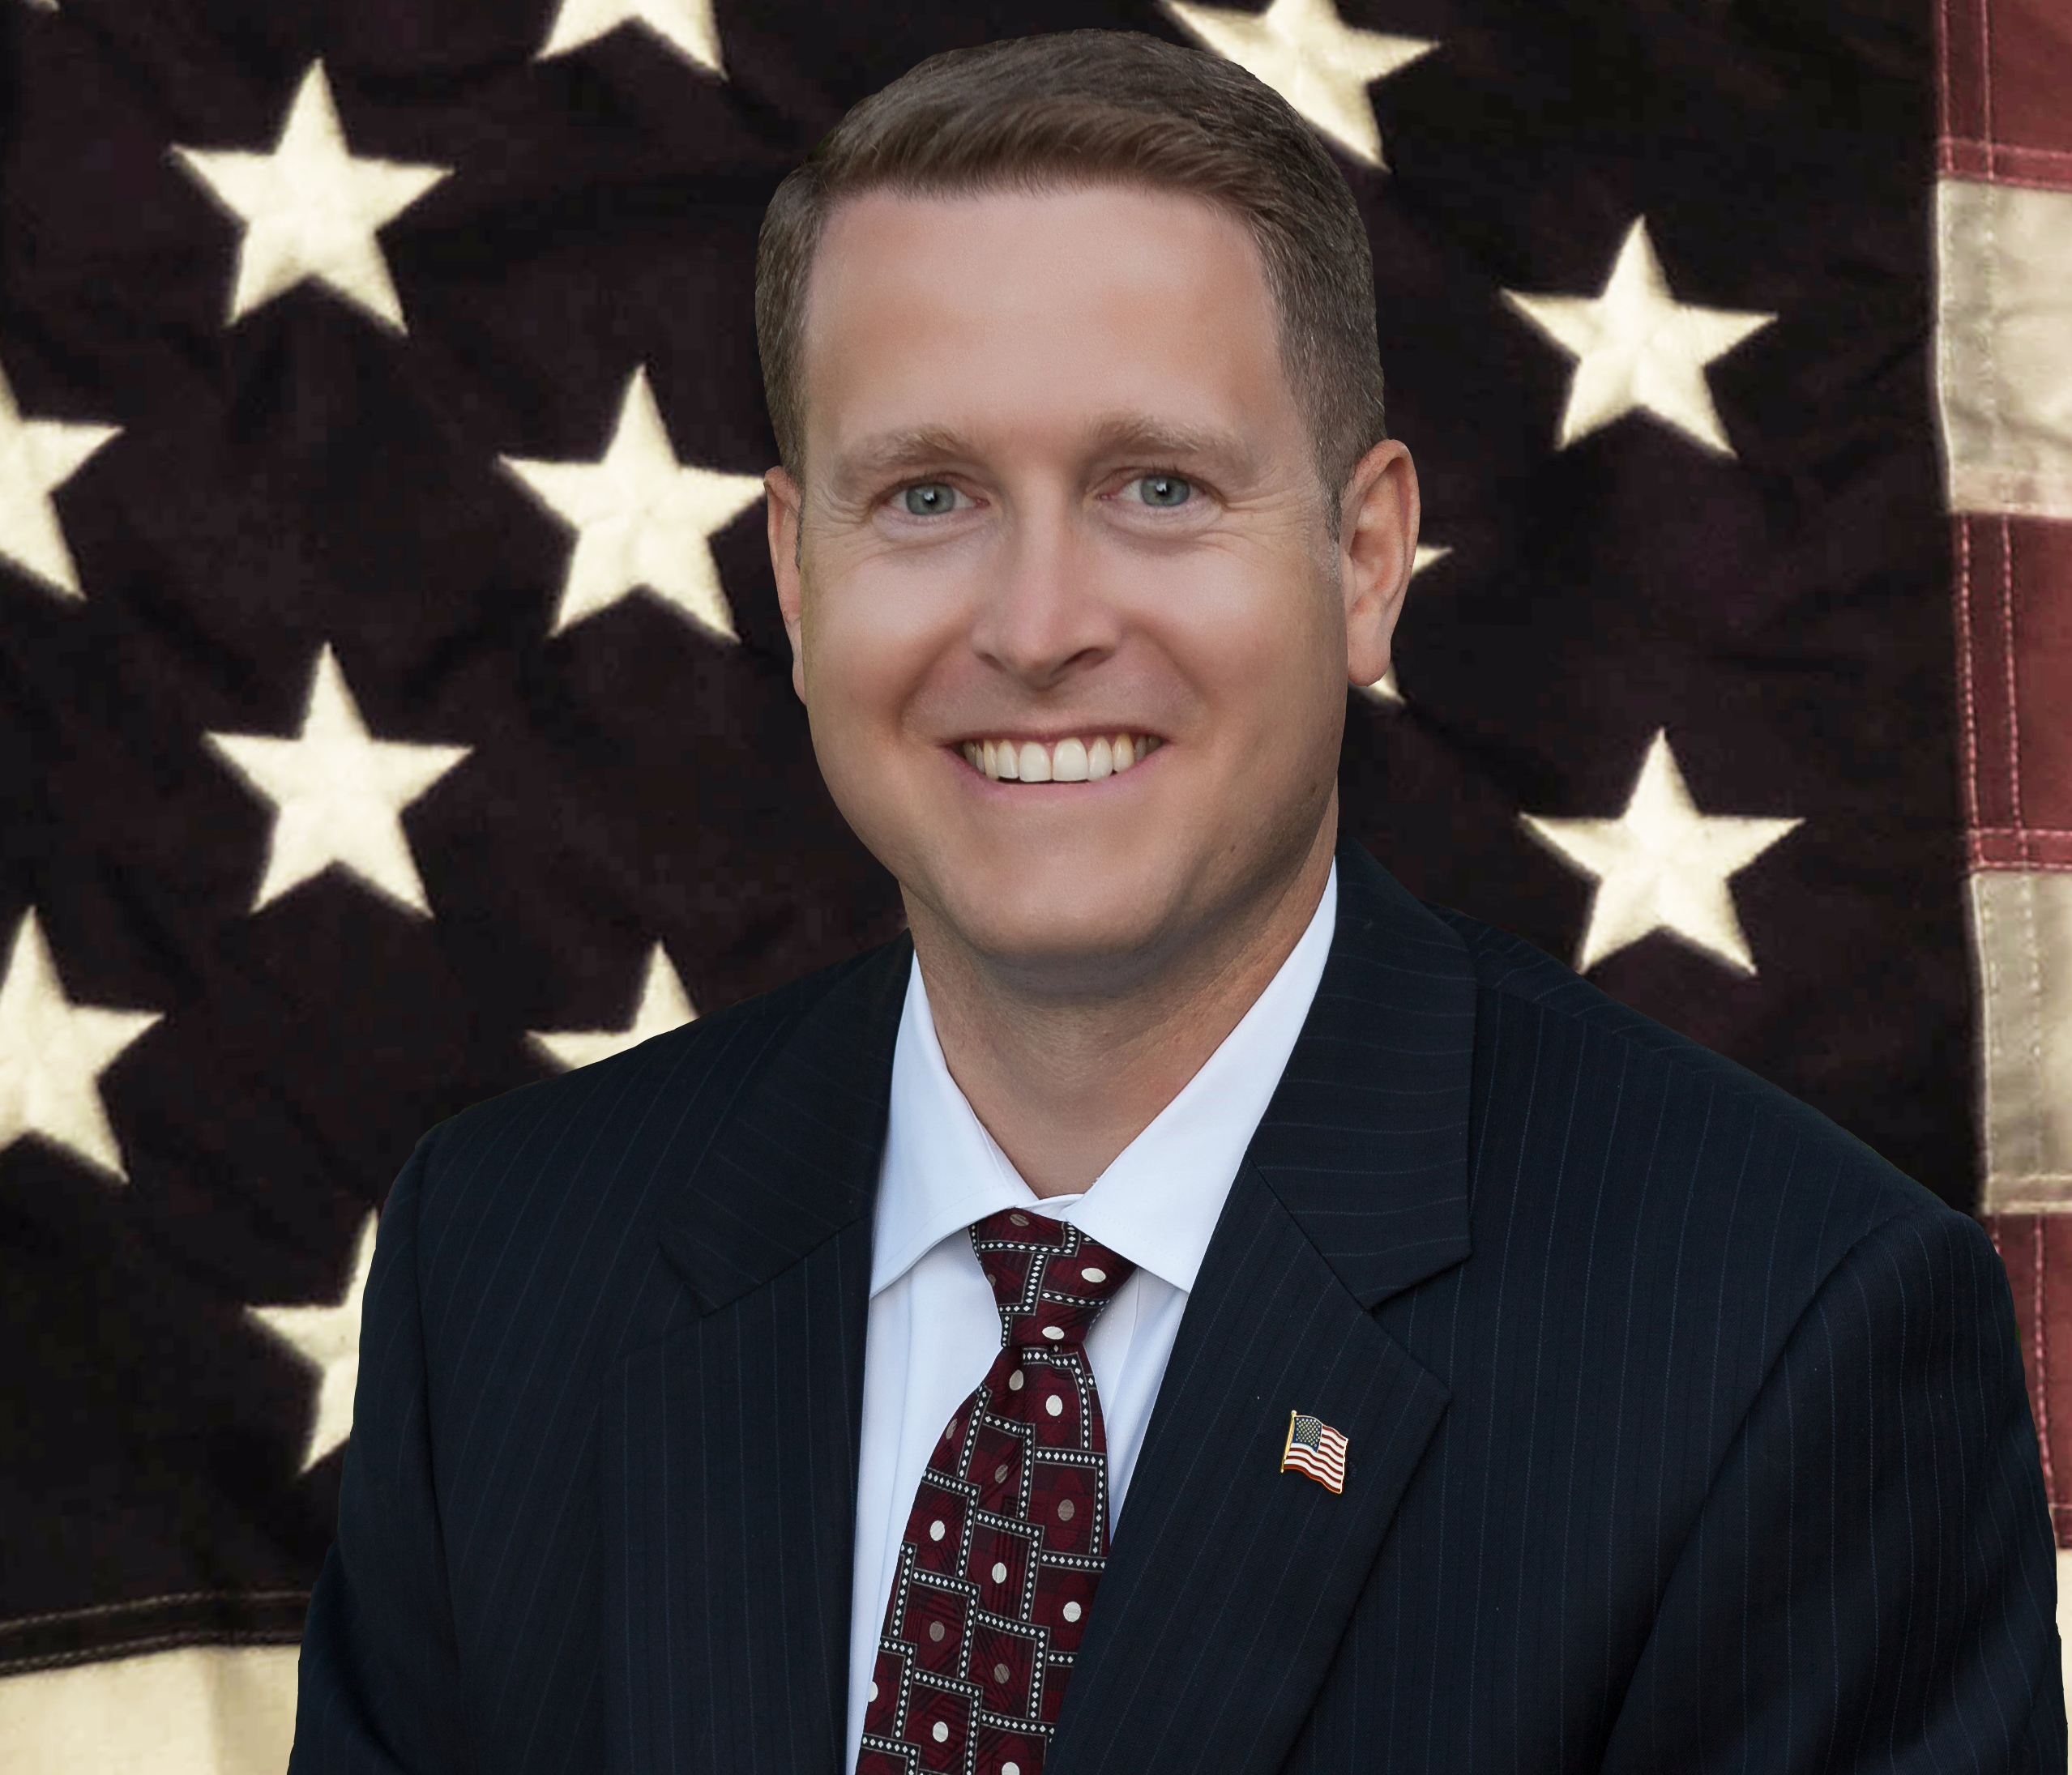 State Rep's Outline For Killing Non-Believers In Holy War Is Referred To FBI